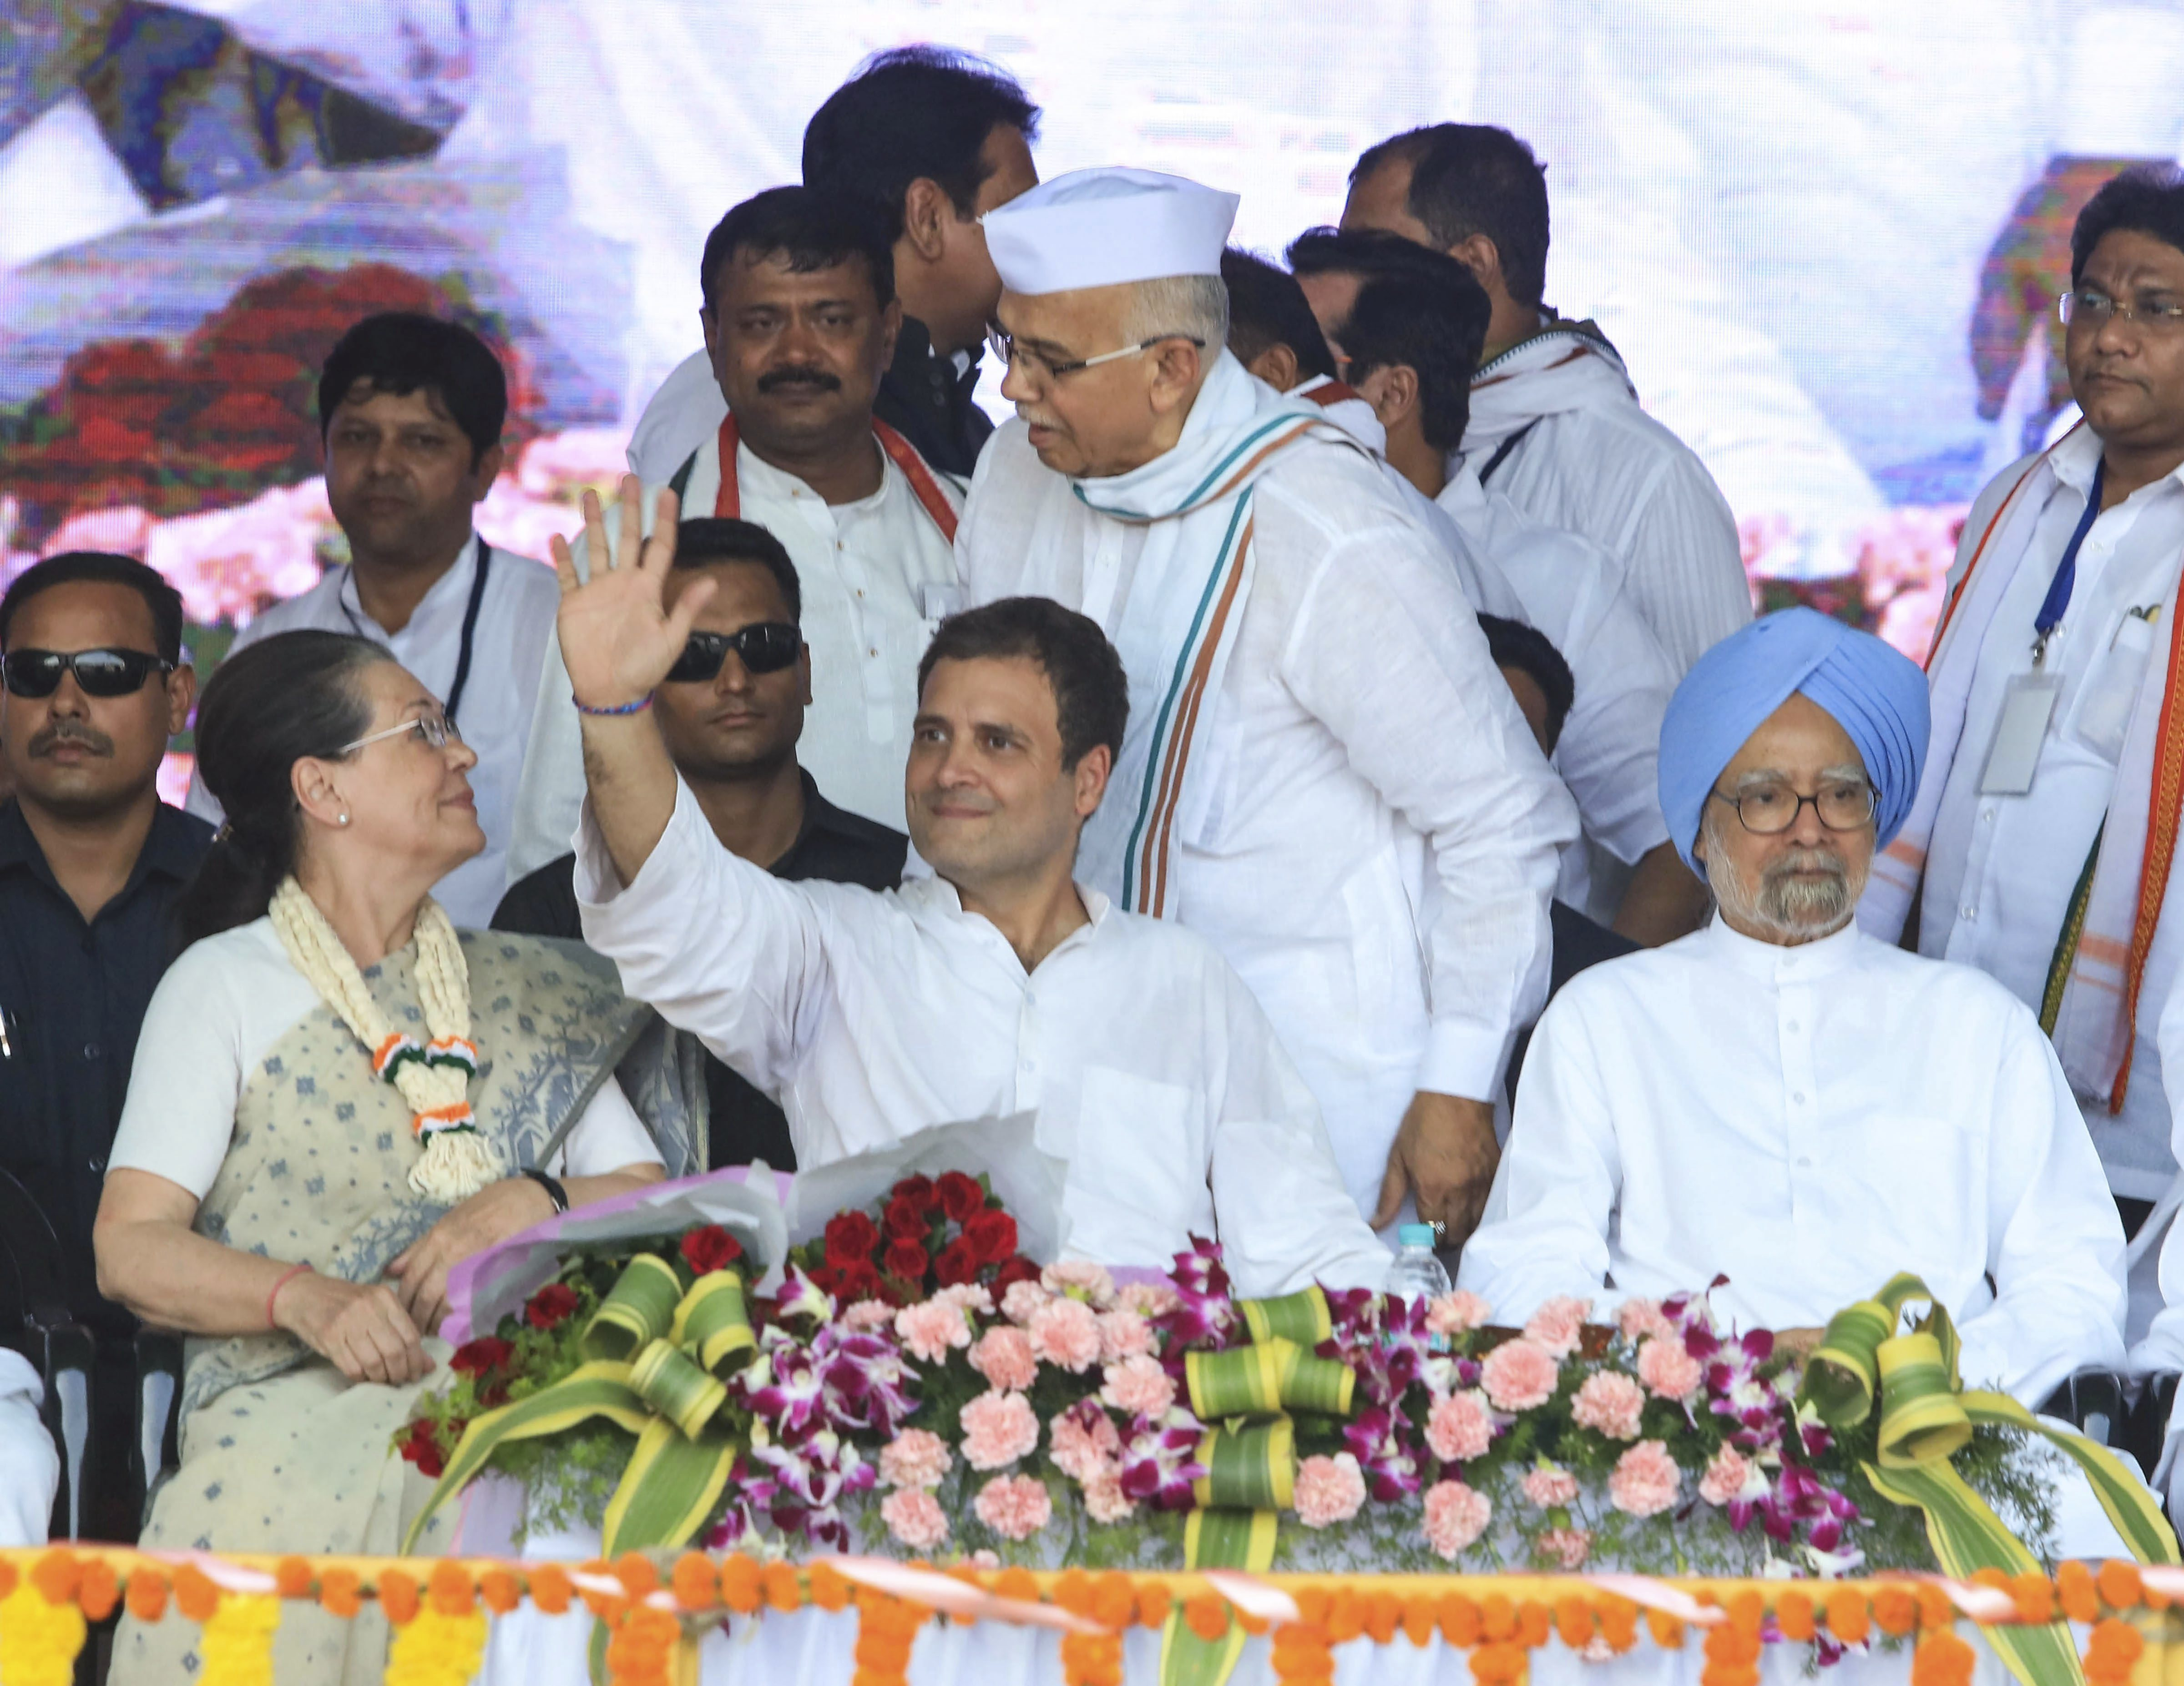 Congress President Rahul Gandhi with former Congress president Sonia Gandhi and former prime minister Manmohan Singh during a public rally in Wardha - PTI